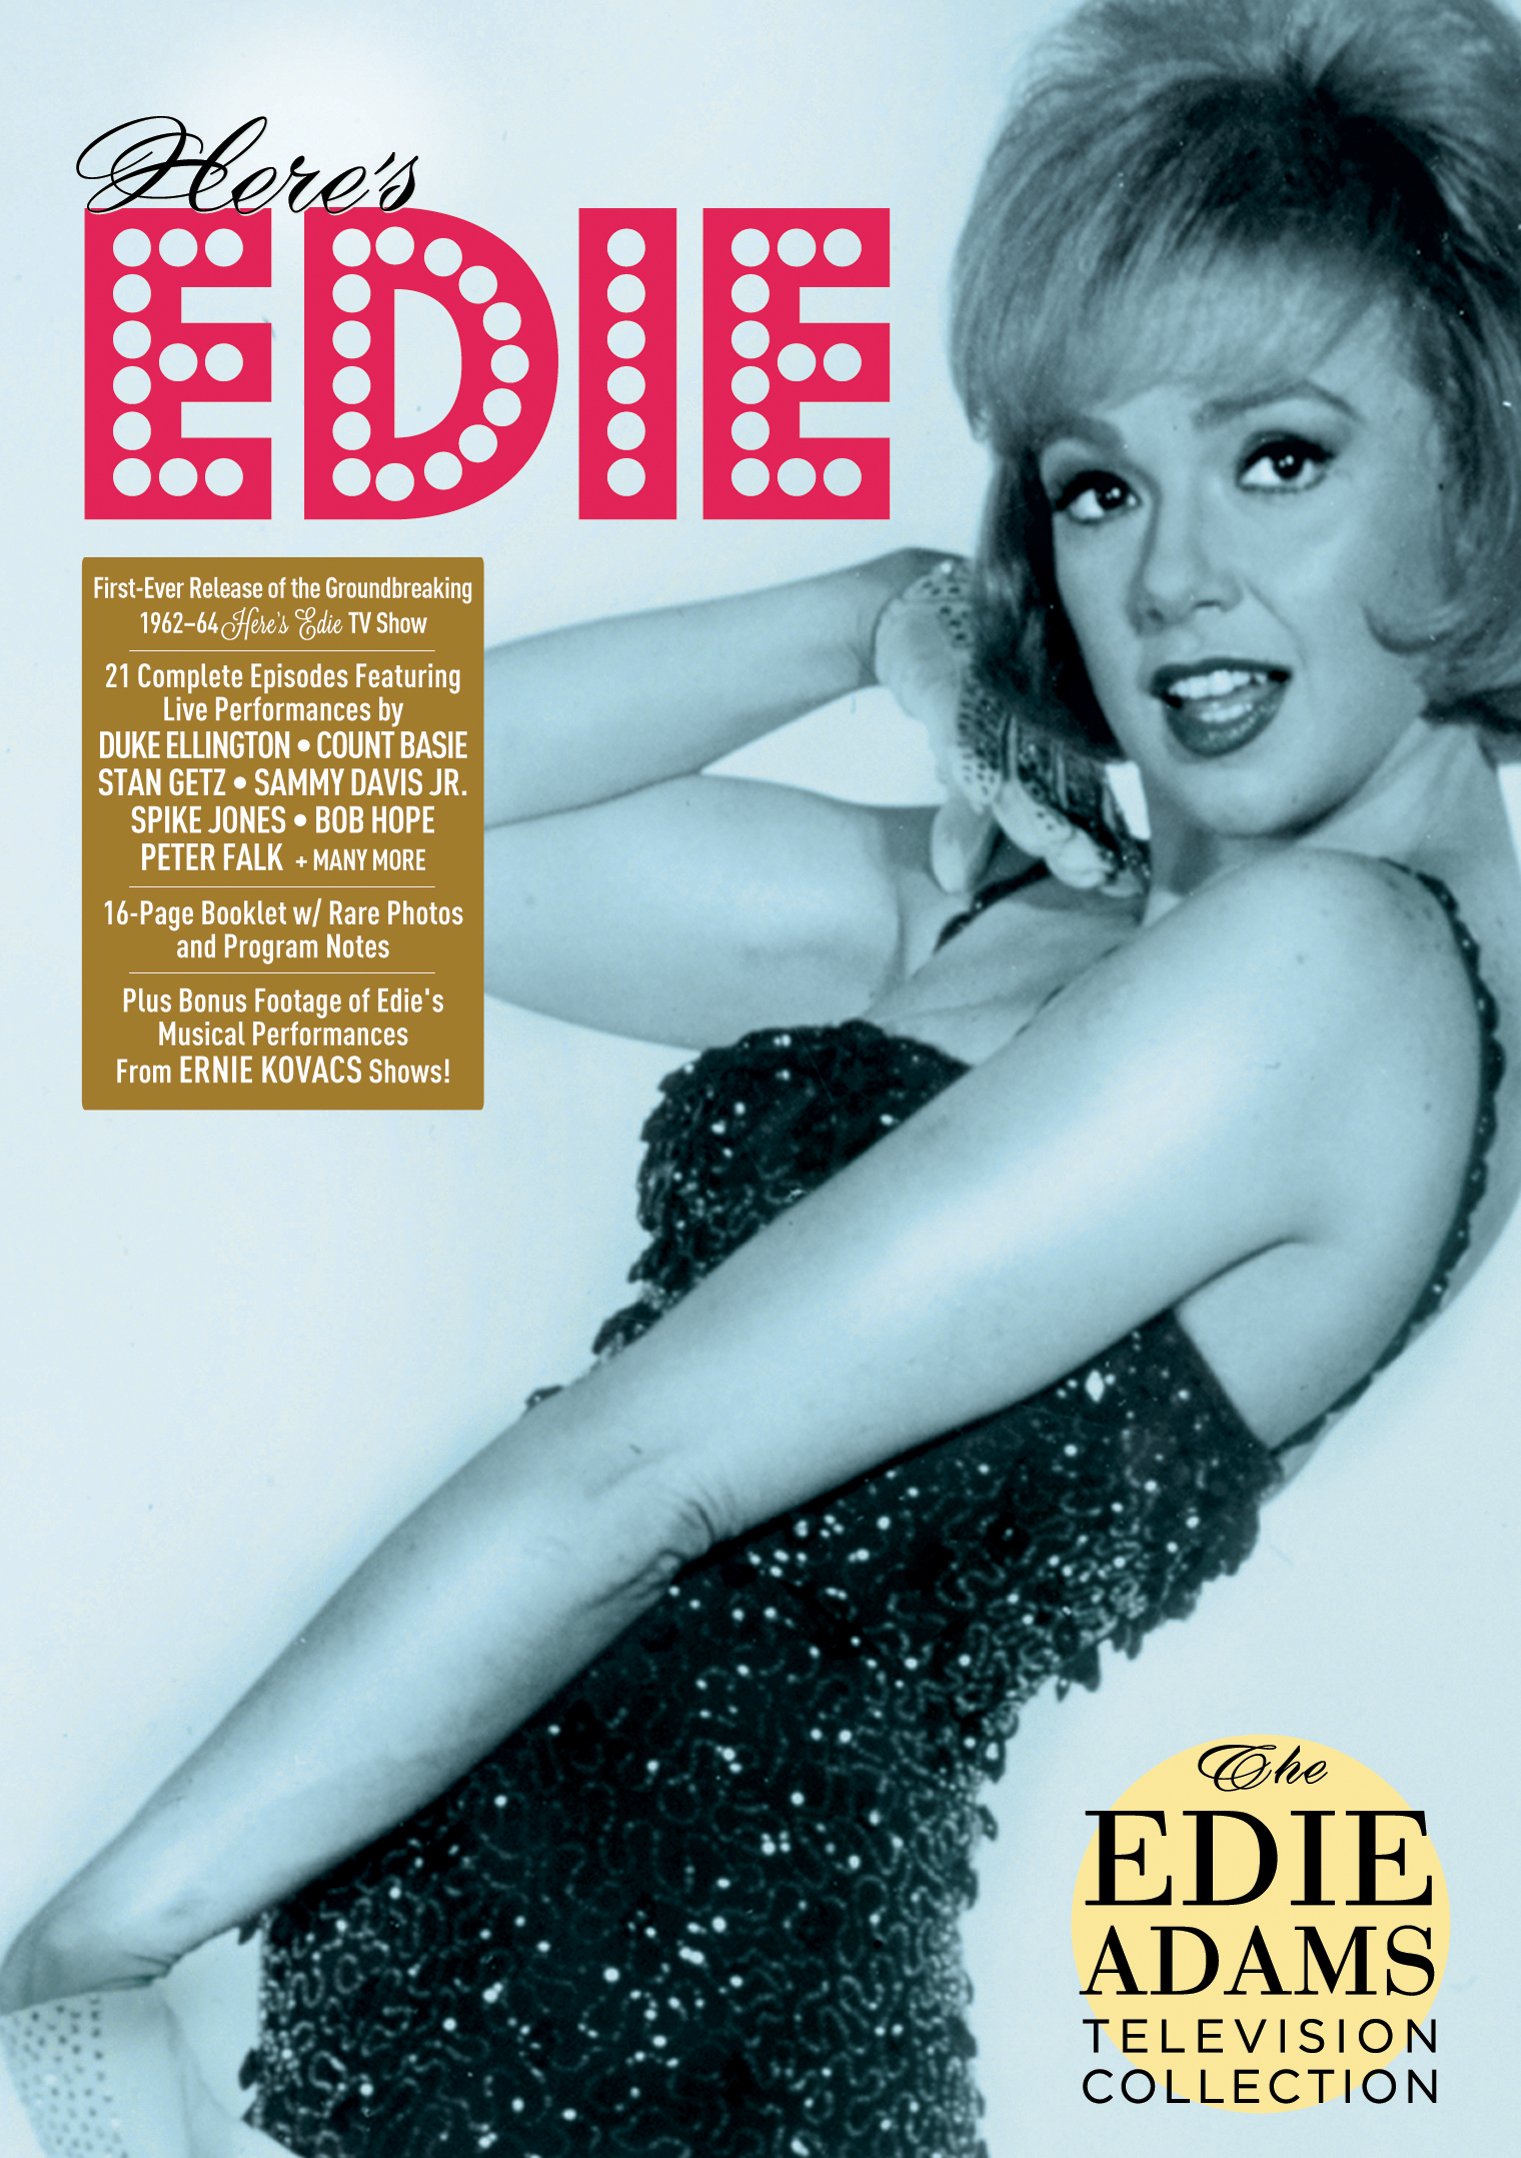 Edie Adams Television Collection from Mid-1960's Comes to DVD – Never-Seen Since Original Broadcast + Bonus Footage of Ernie Kovacs